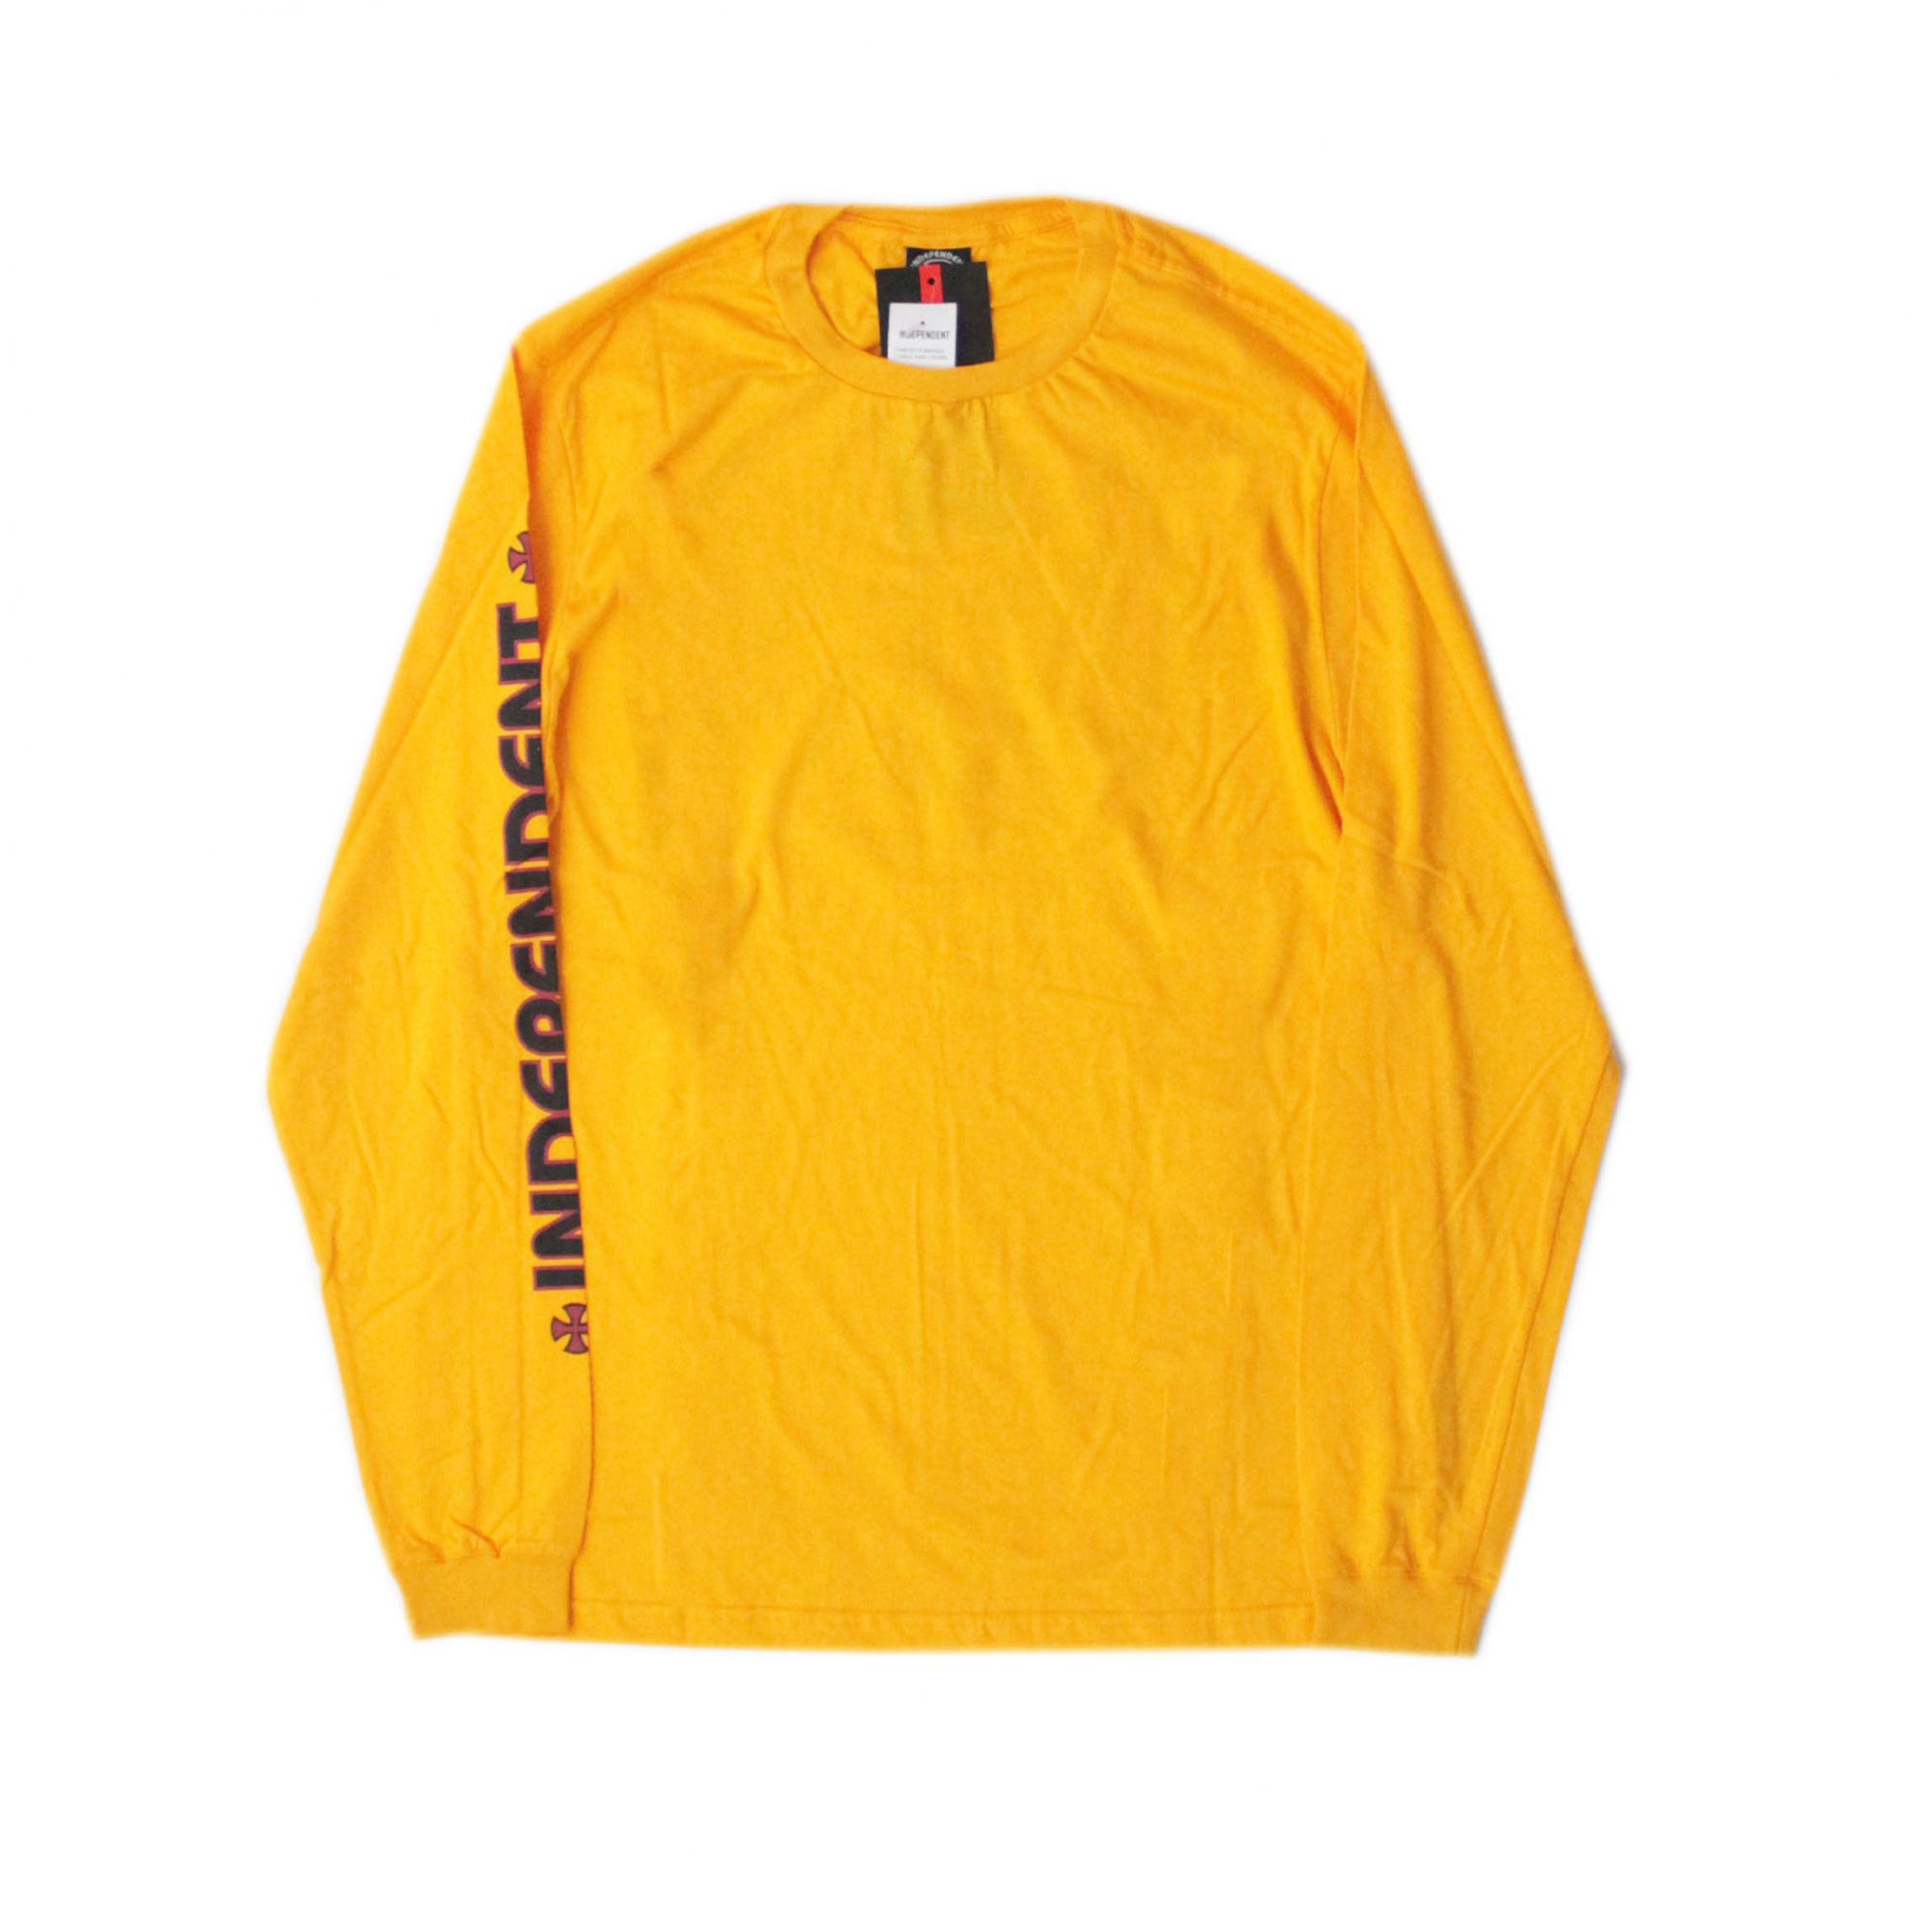 Camiseta Manga Longa Independent Bar Cross Amarelo